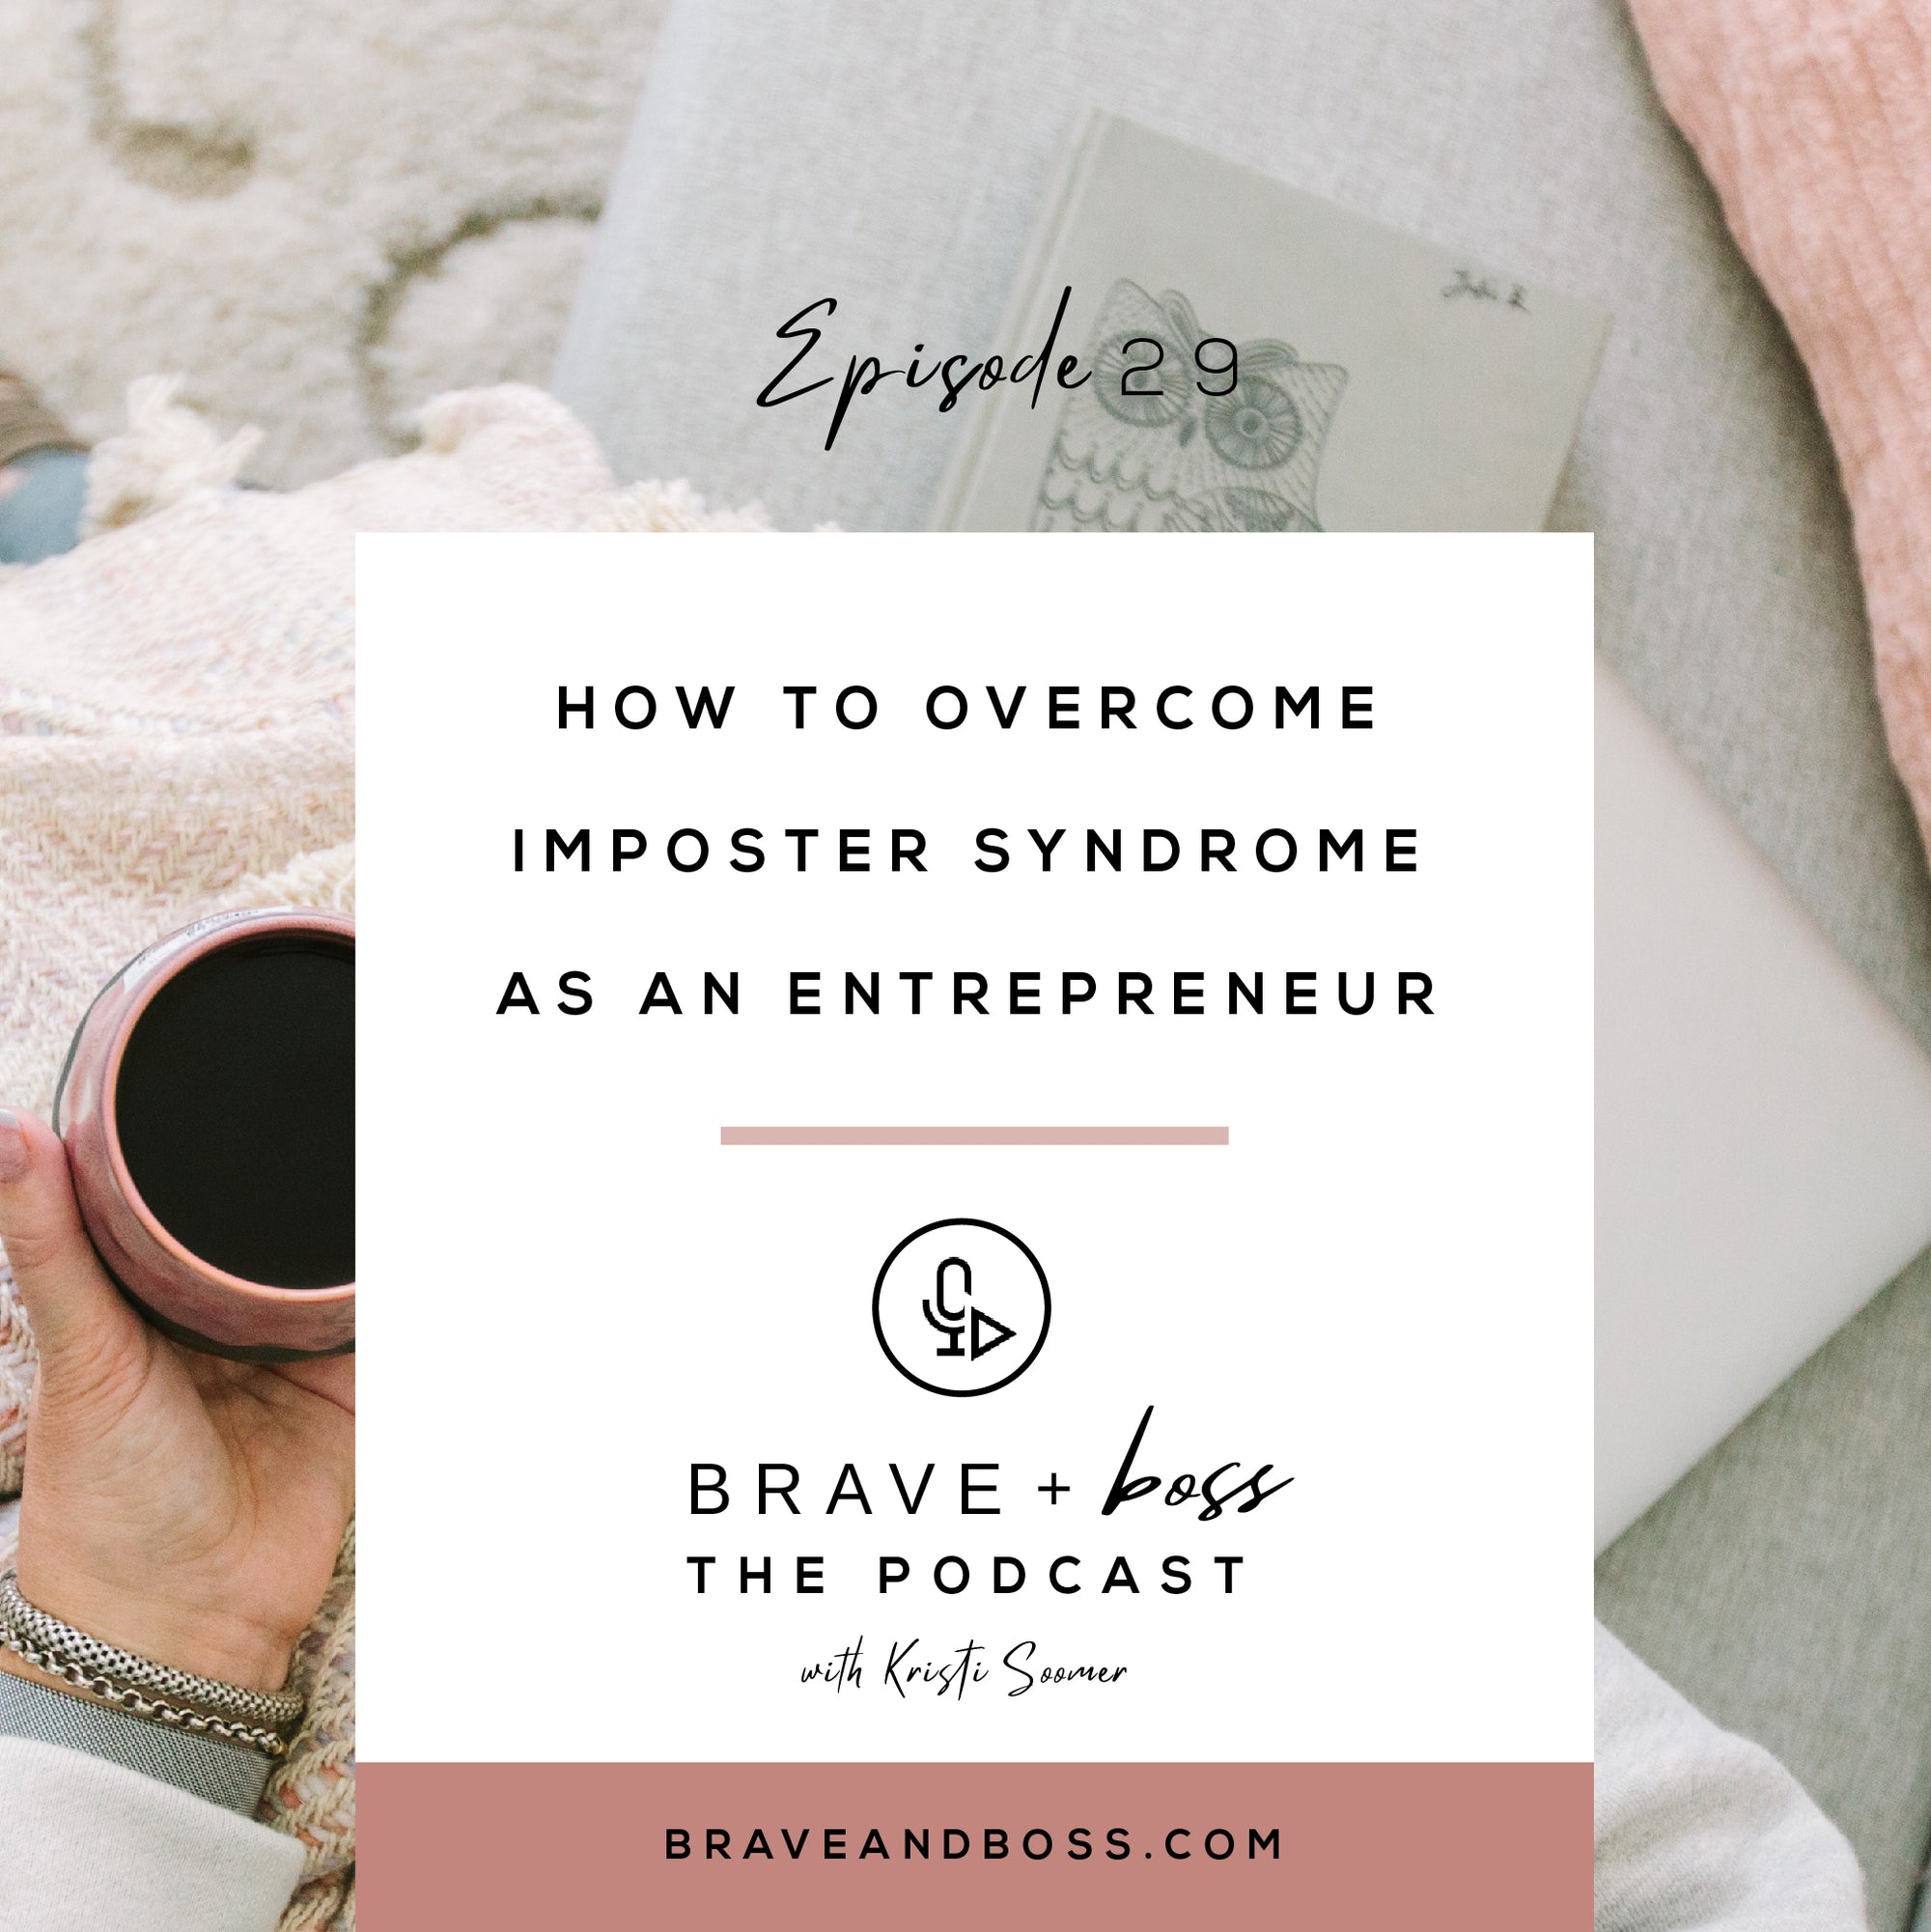 How to Overcome Imposter Syndrome as an Entrepreneur